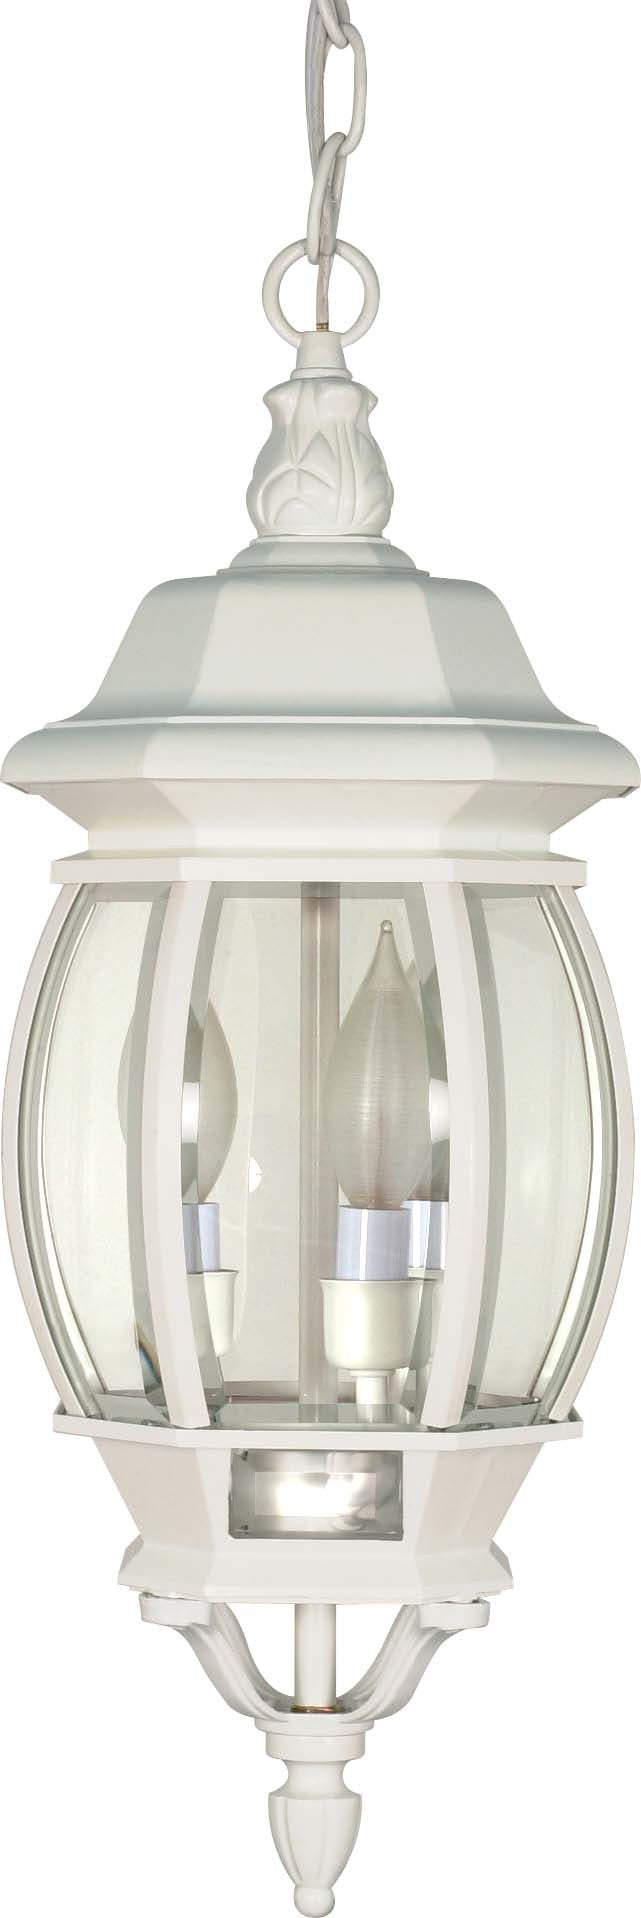 """Nuvo Central Park 3-Light 20"""" Hanging Lantern w/ Clear Glass in White Finish"""